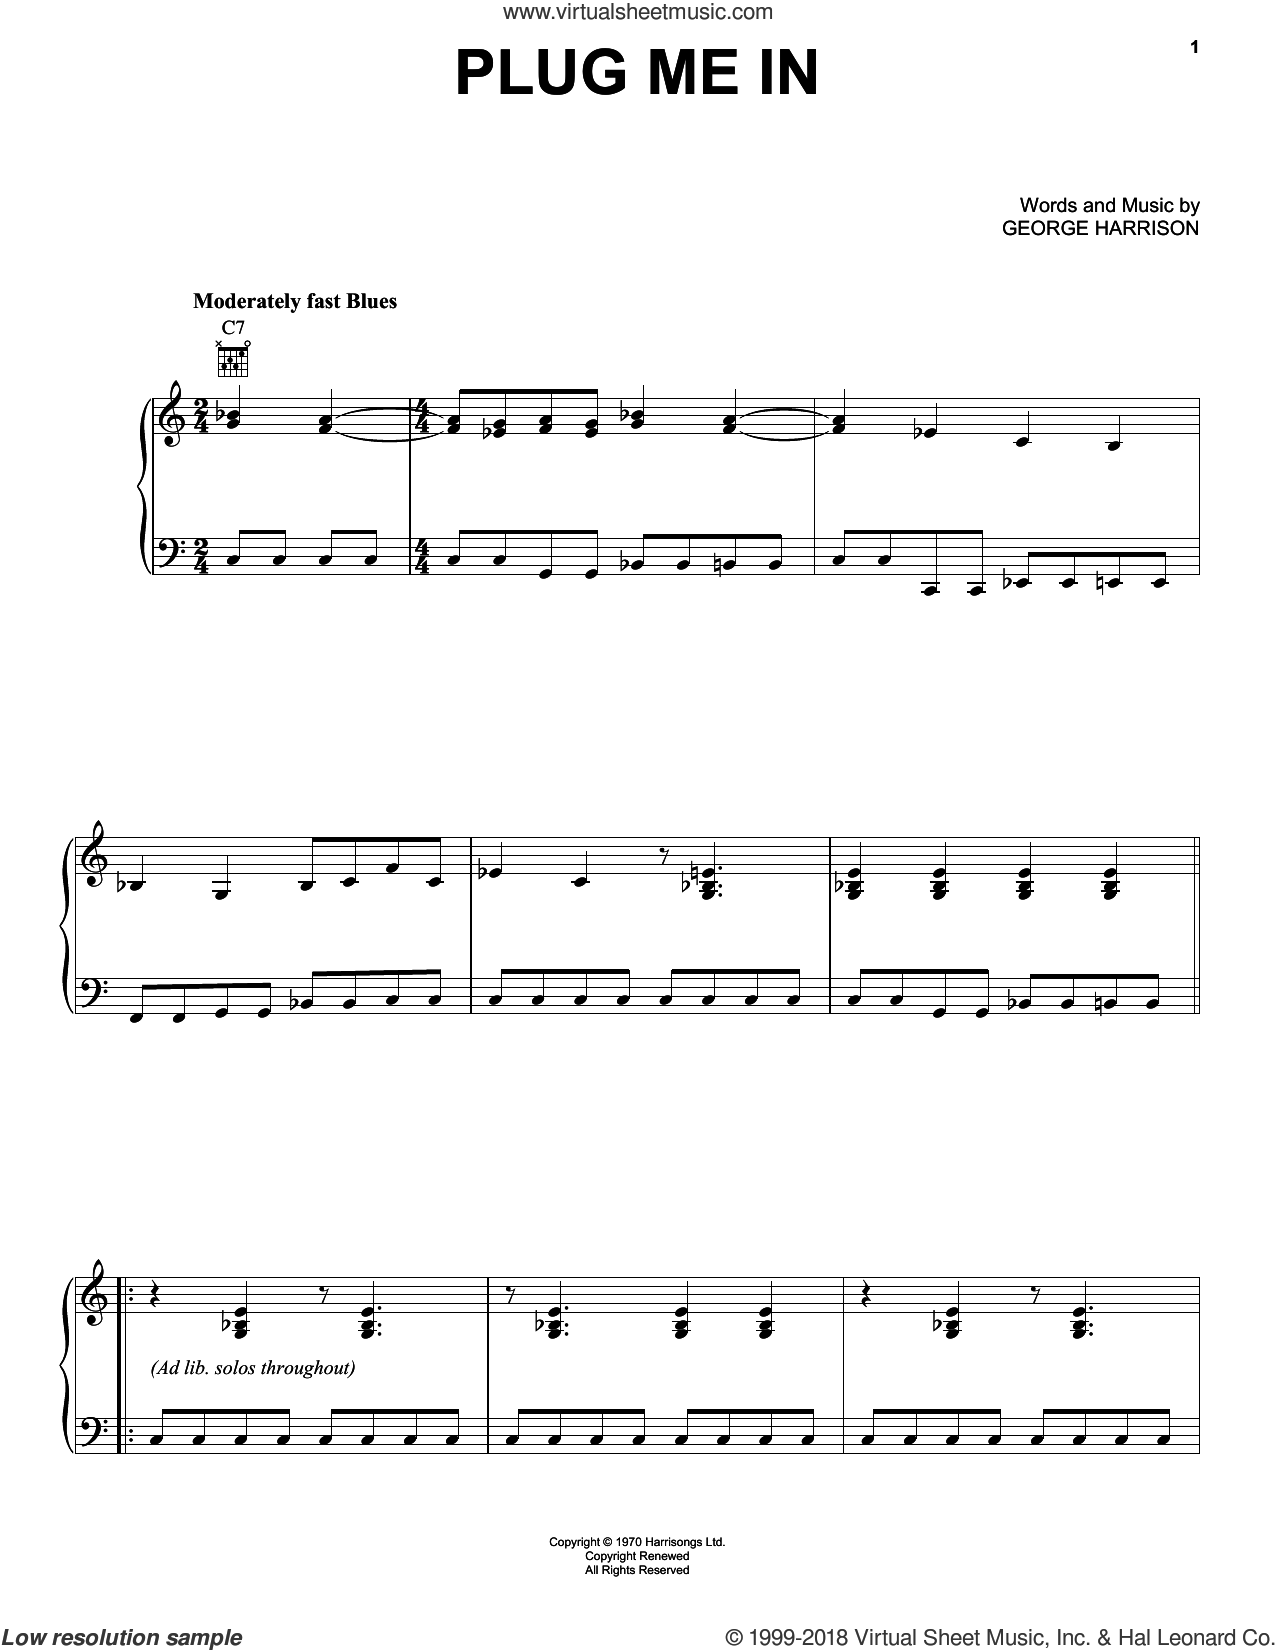 Plug Me In sheet music for piano solo by George Harrison, intermediate skill level